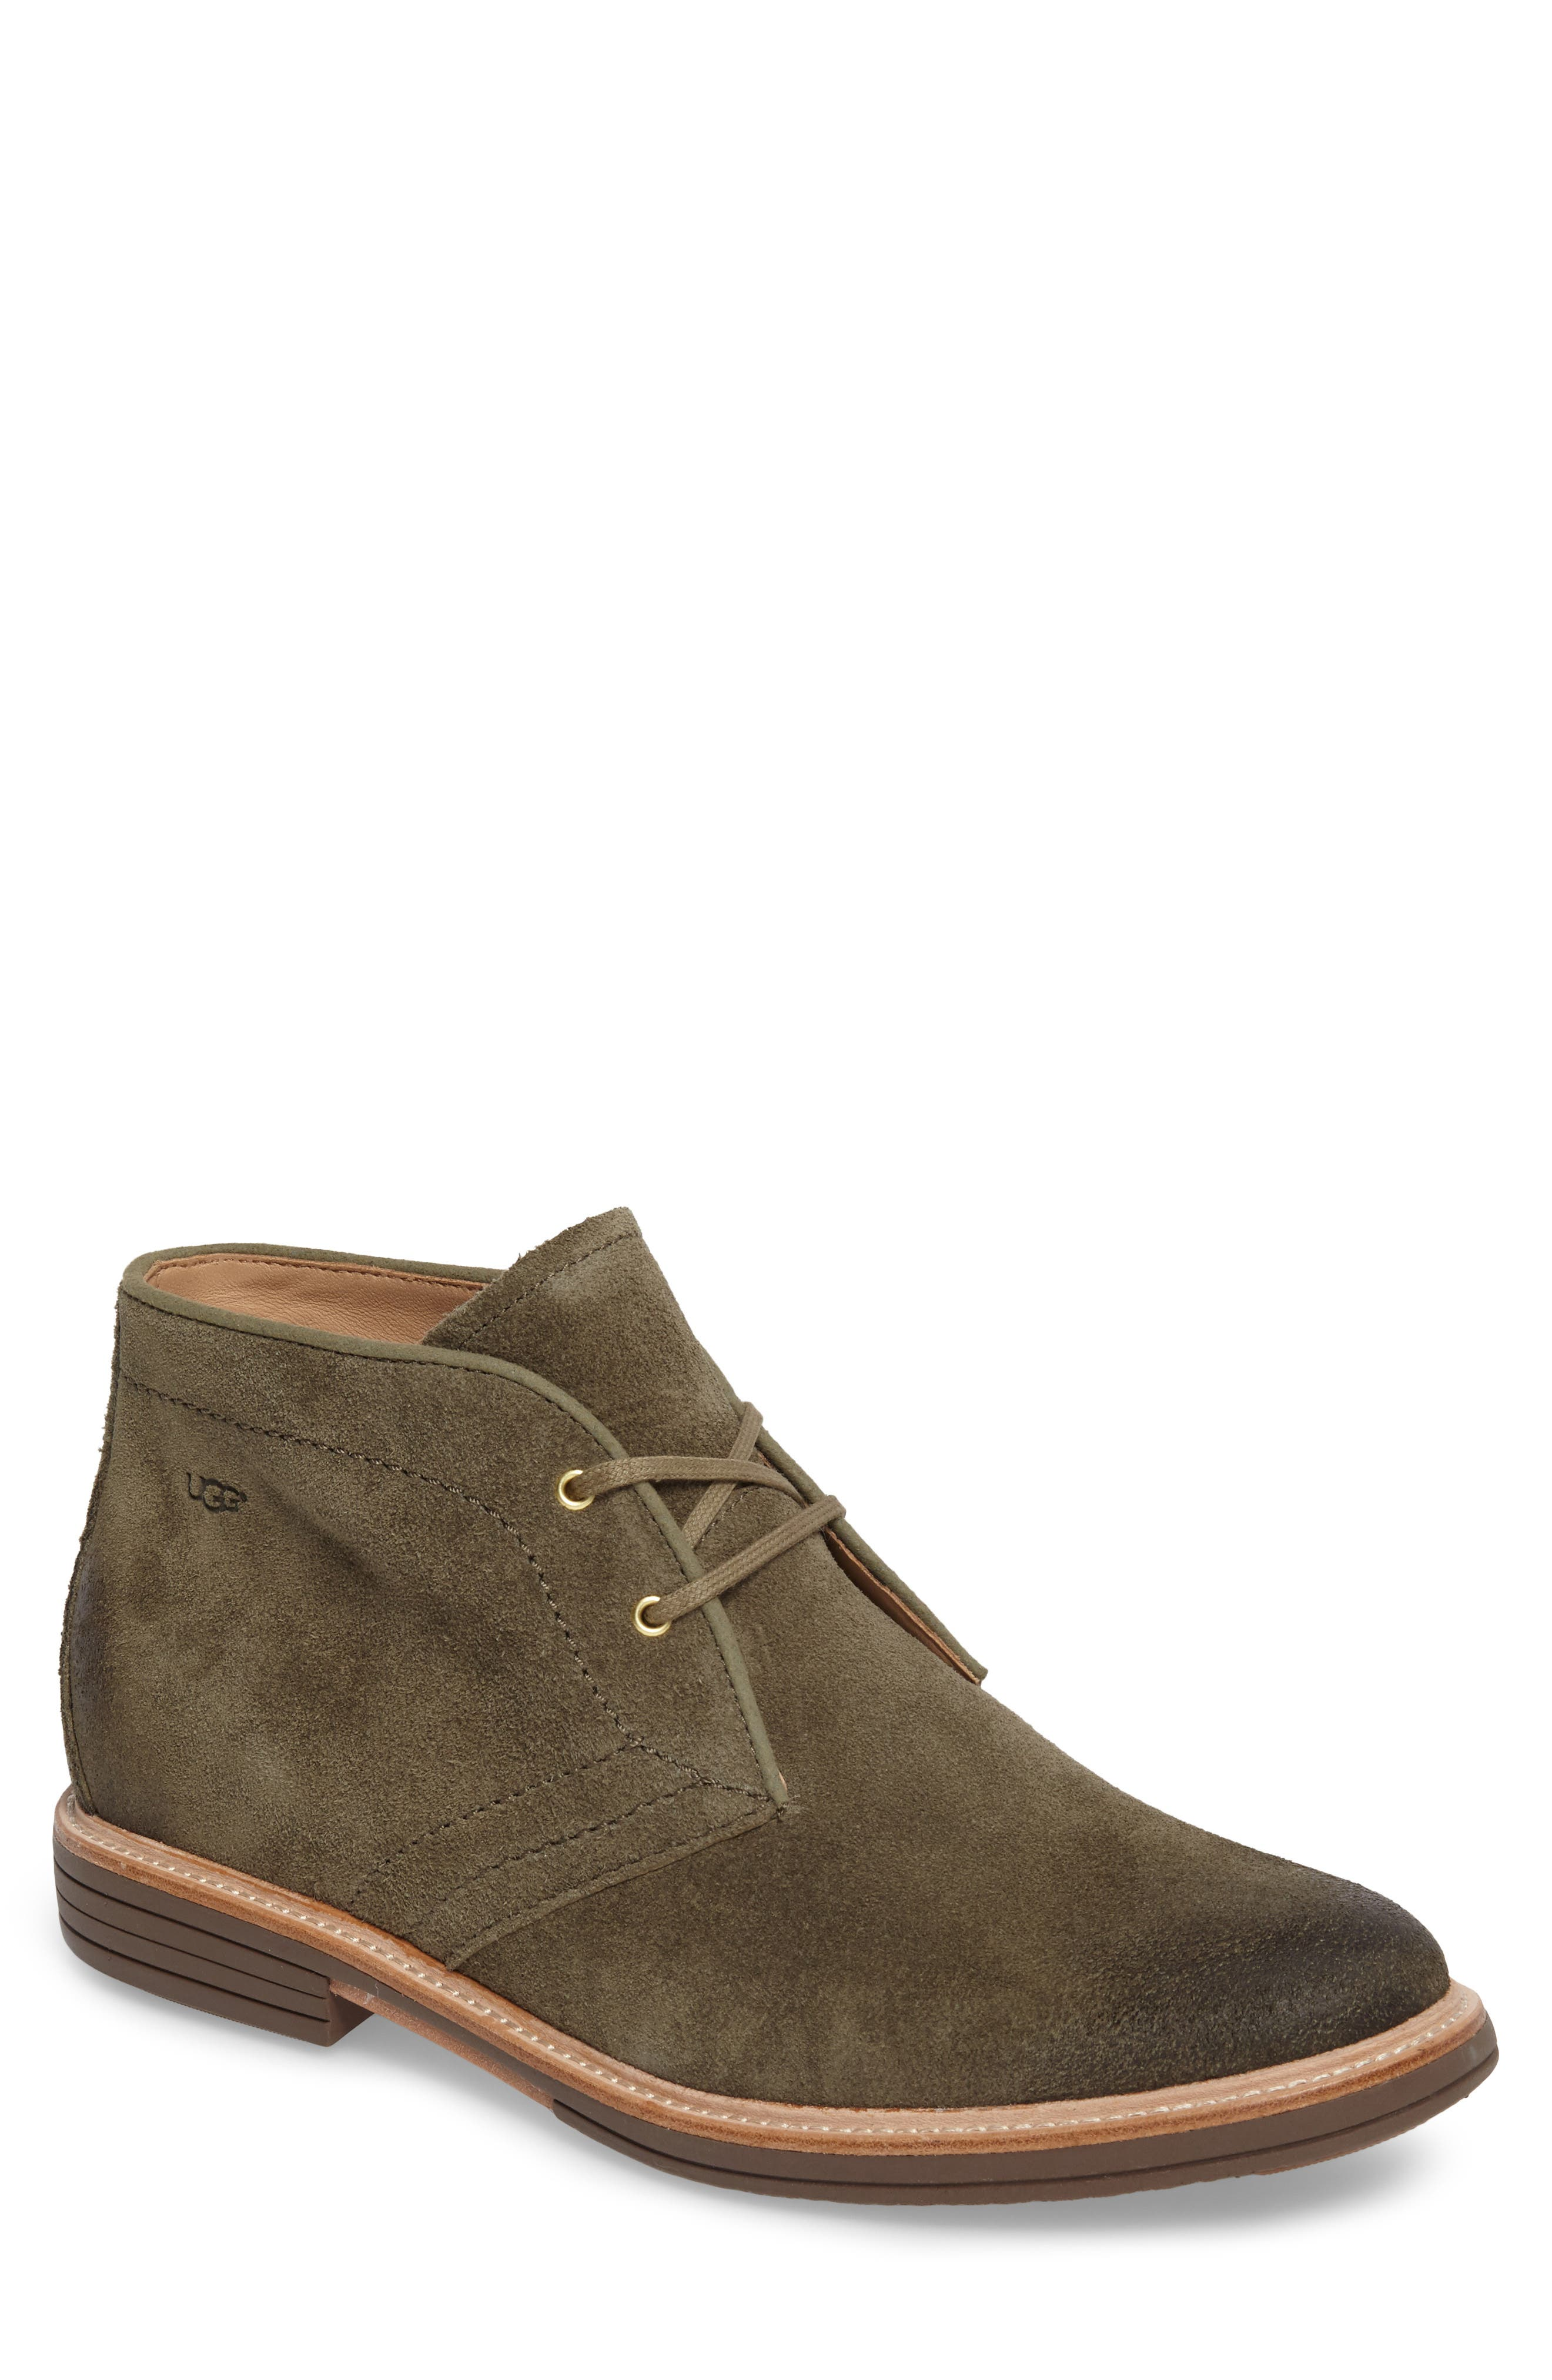 Australia Dagmann Chukka Boot,                             Main thumbnail 1, color,                             Olive